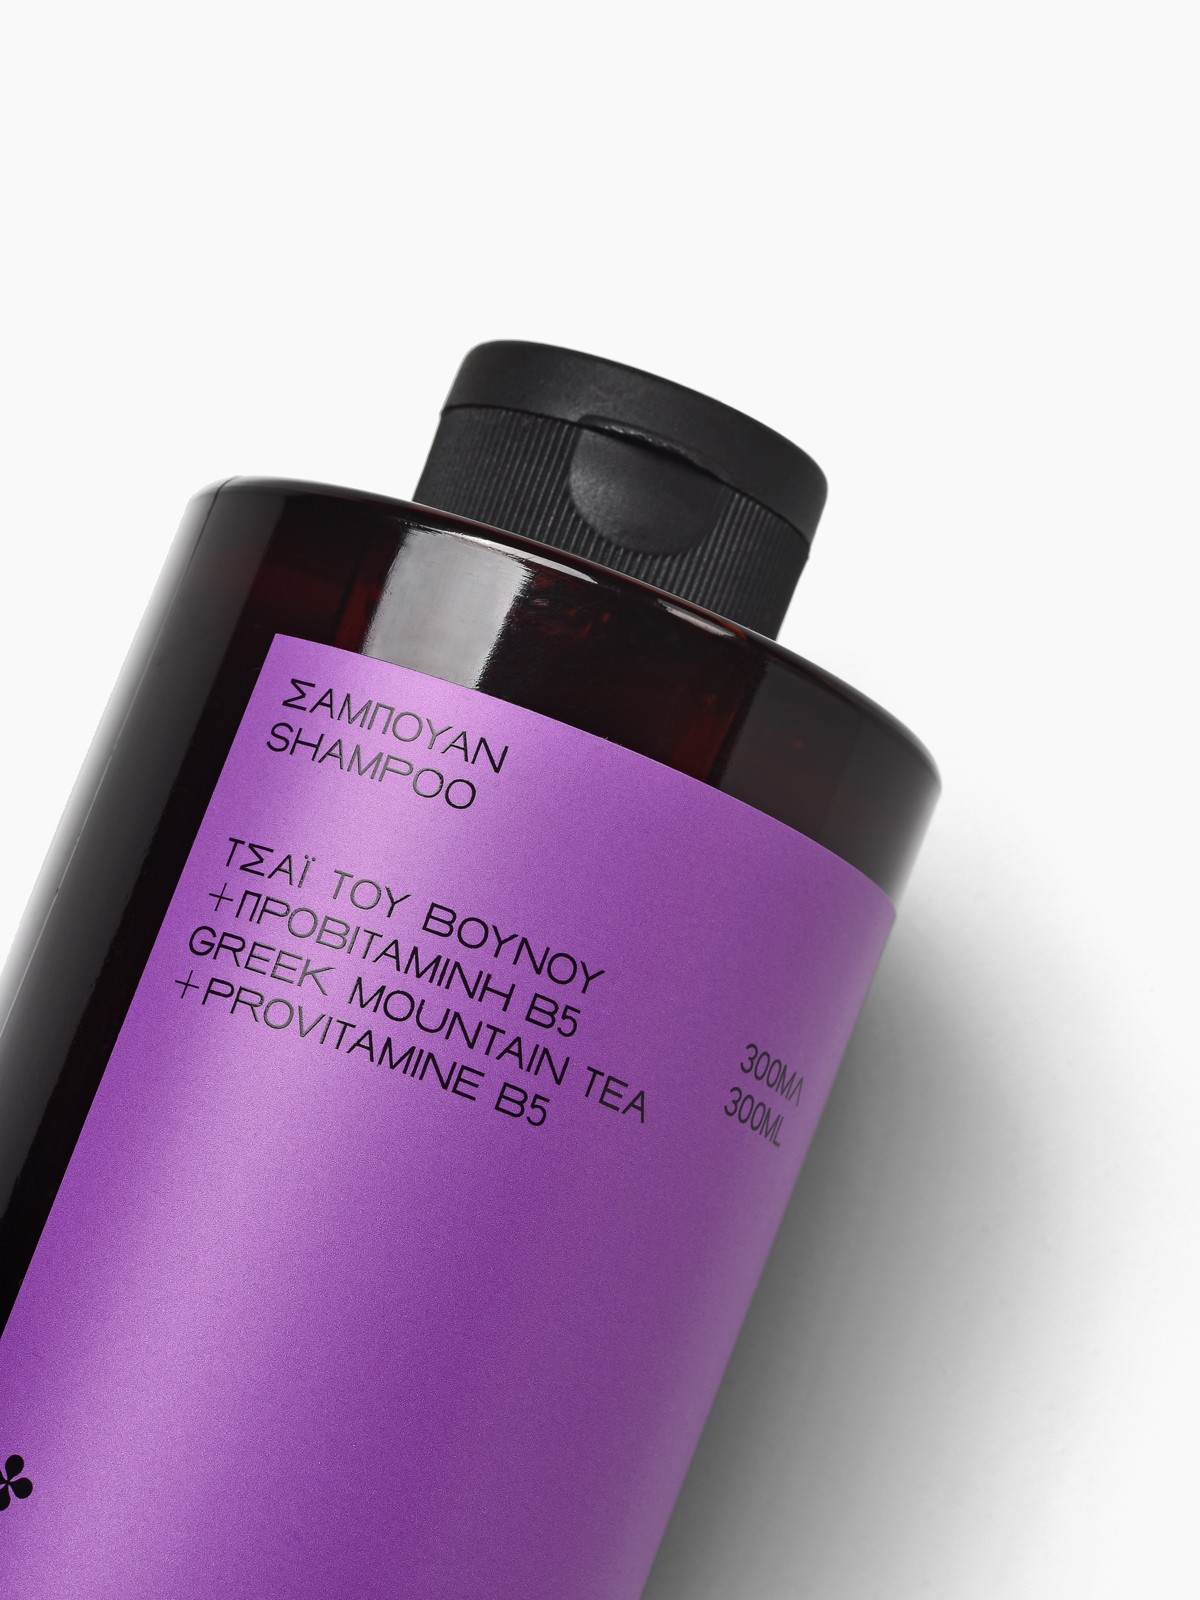 Greek Mountain tea & Provitamin B5 Shampoo